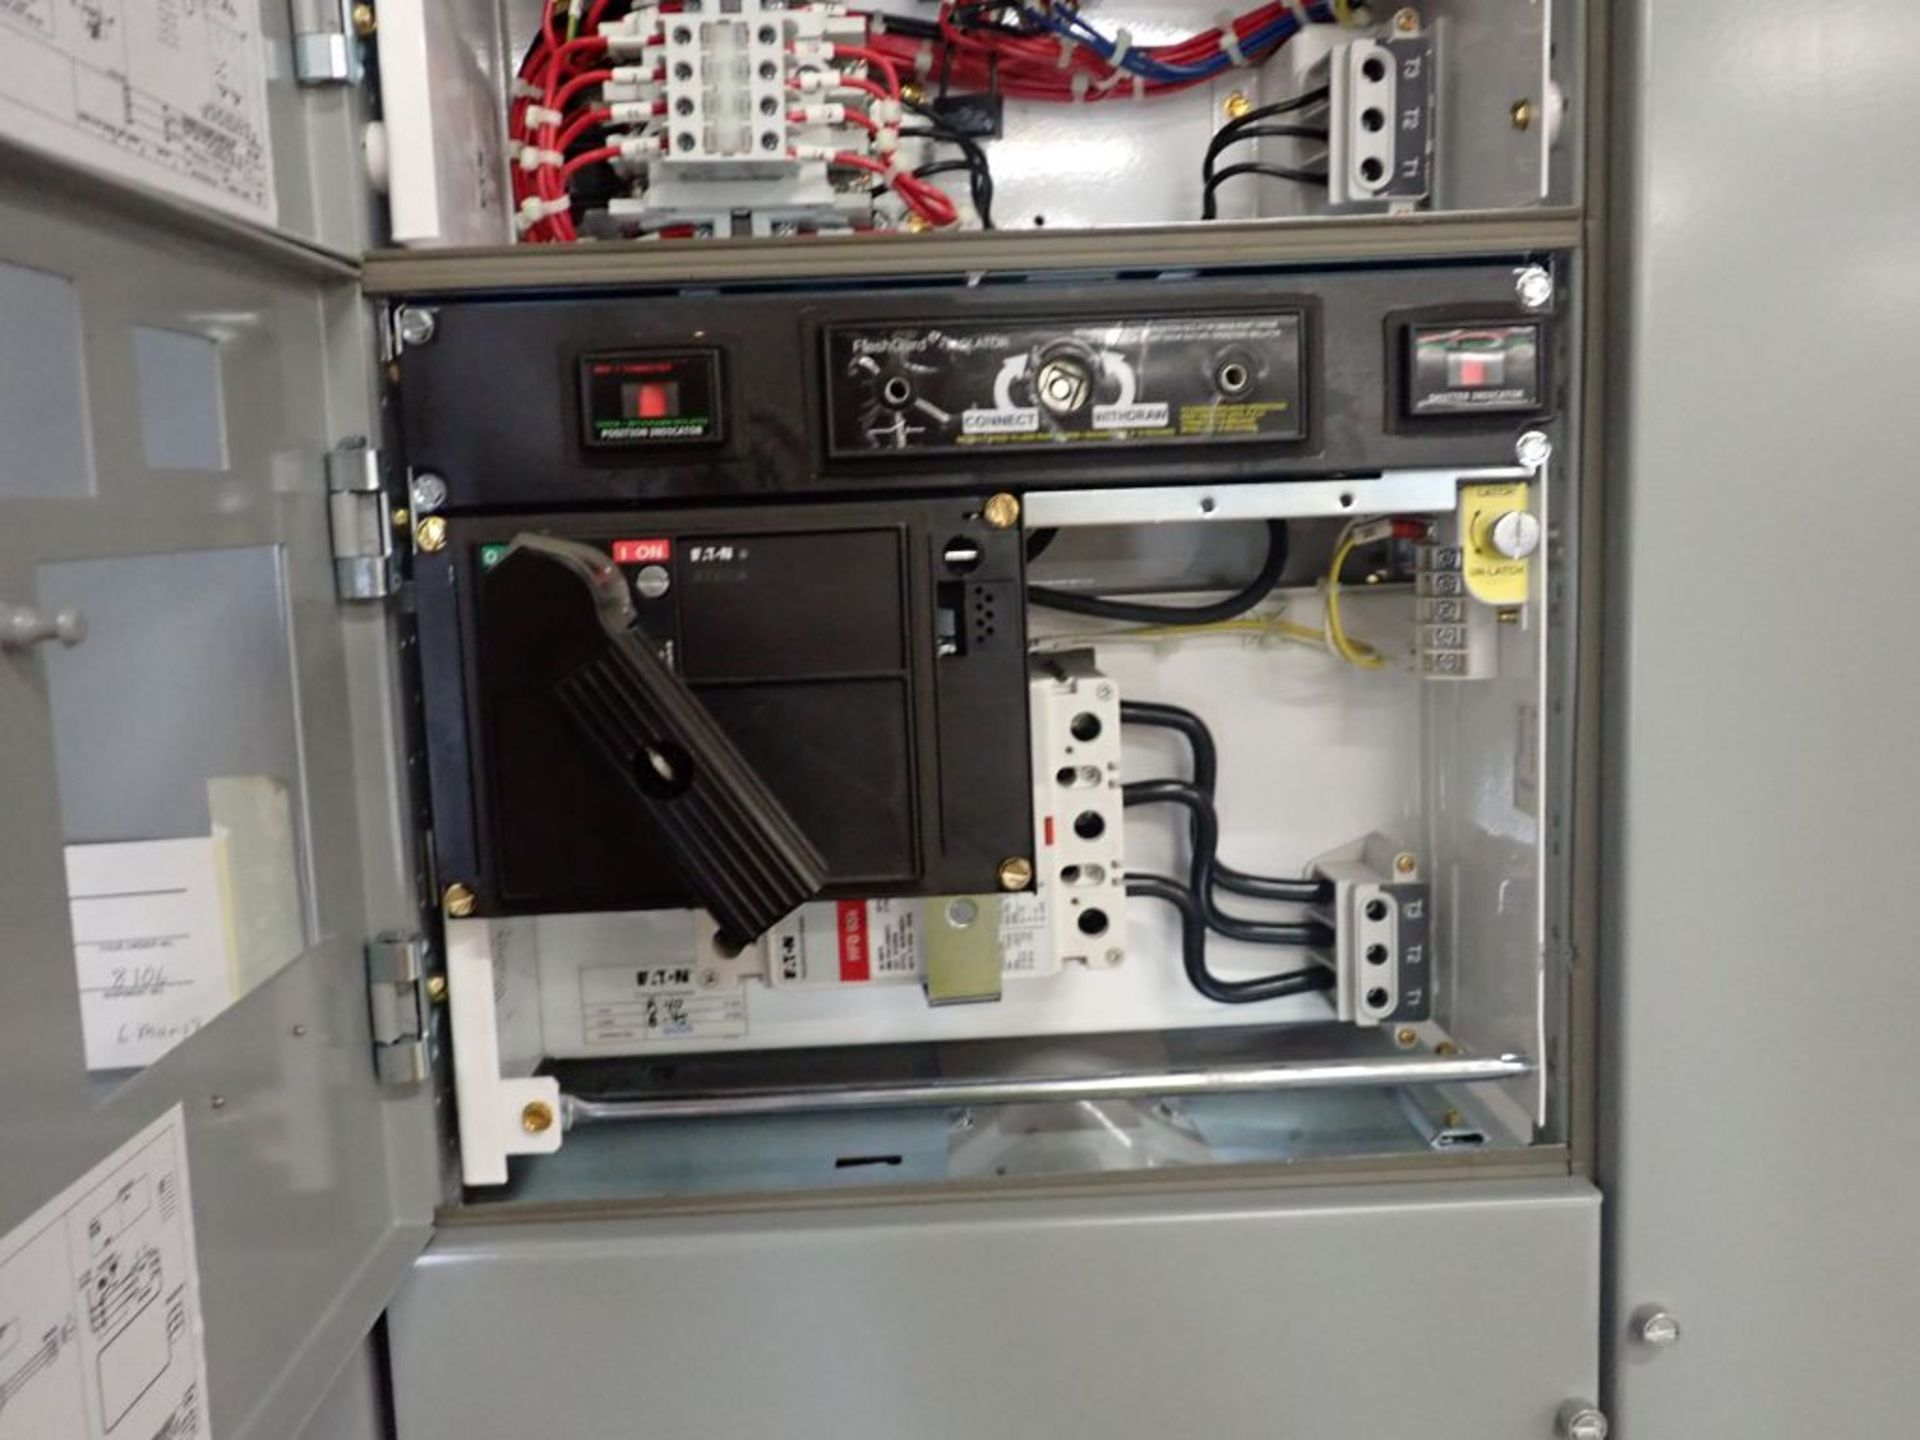 Eaton Freedom 2100 Series Motor Control Center | (2) F208-30A; (1) F208-40A; (1) FDRB-50A; (2) - Image 30 of 37